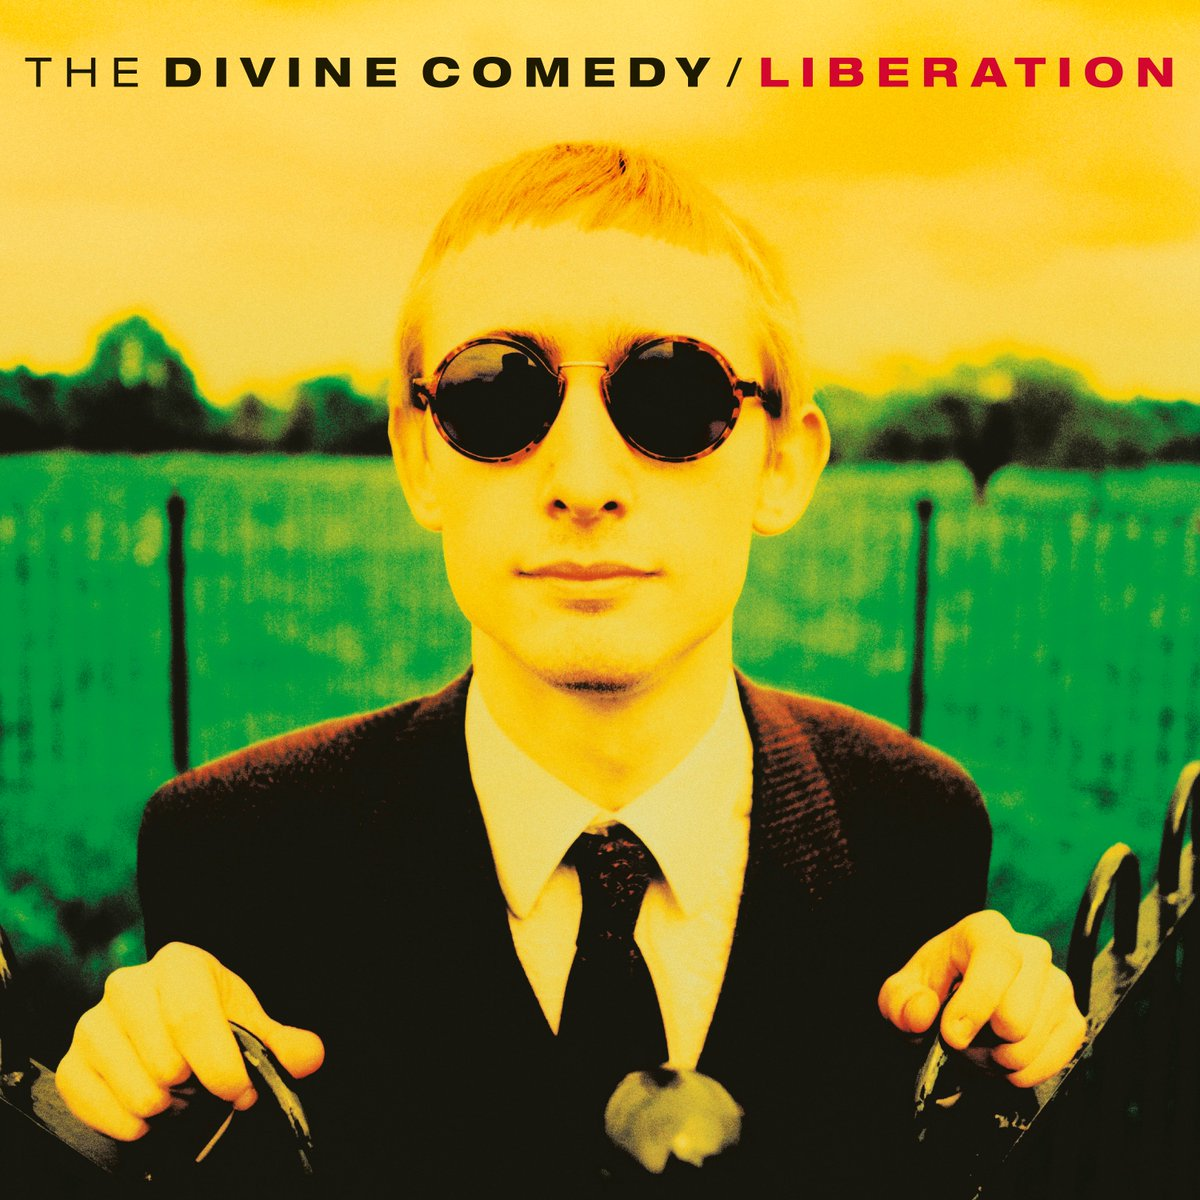 Whats your favourite track on Liberation? PS: You can pre-order the 12CD Boxset Venus, Cupid, Folly & Time and LP/2CD reissues at: thedivinecomedy.tmstor.es Enquiries: @TownsendMusicUK 👍 #TheDivineComedy30 #TheDivineComedy